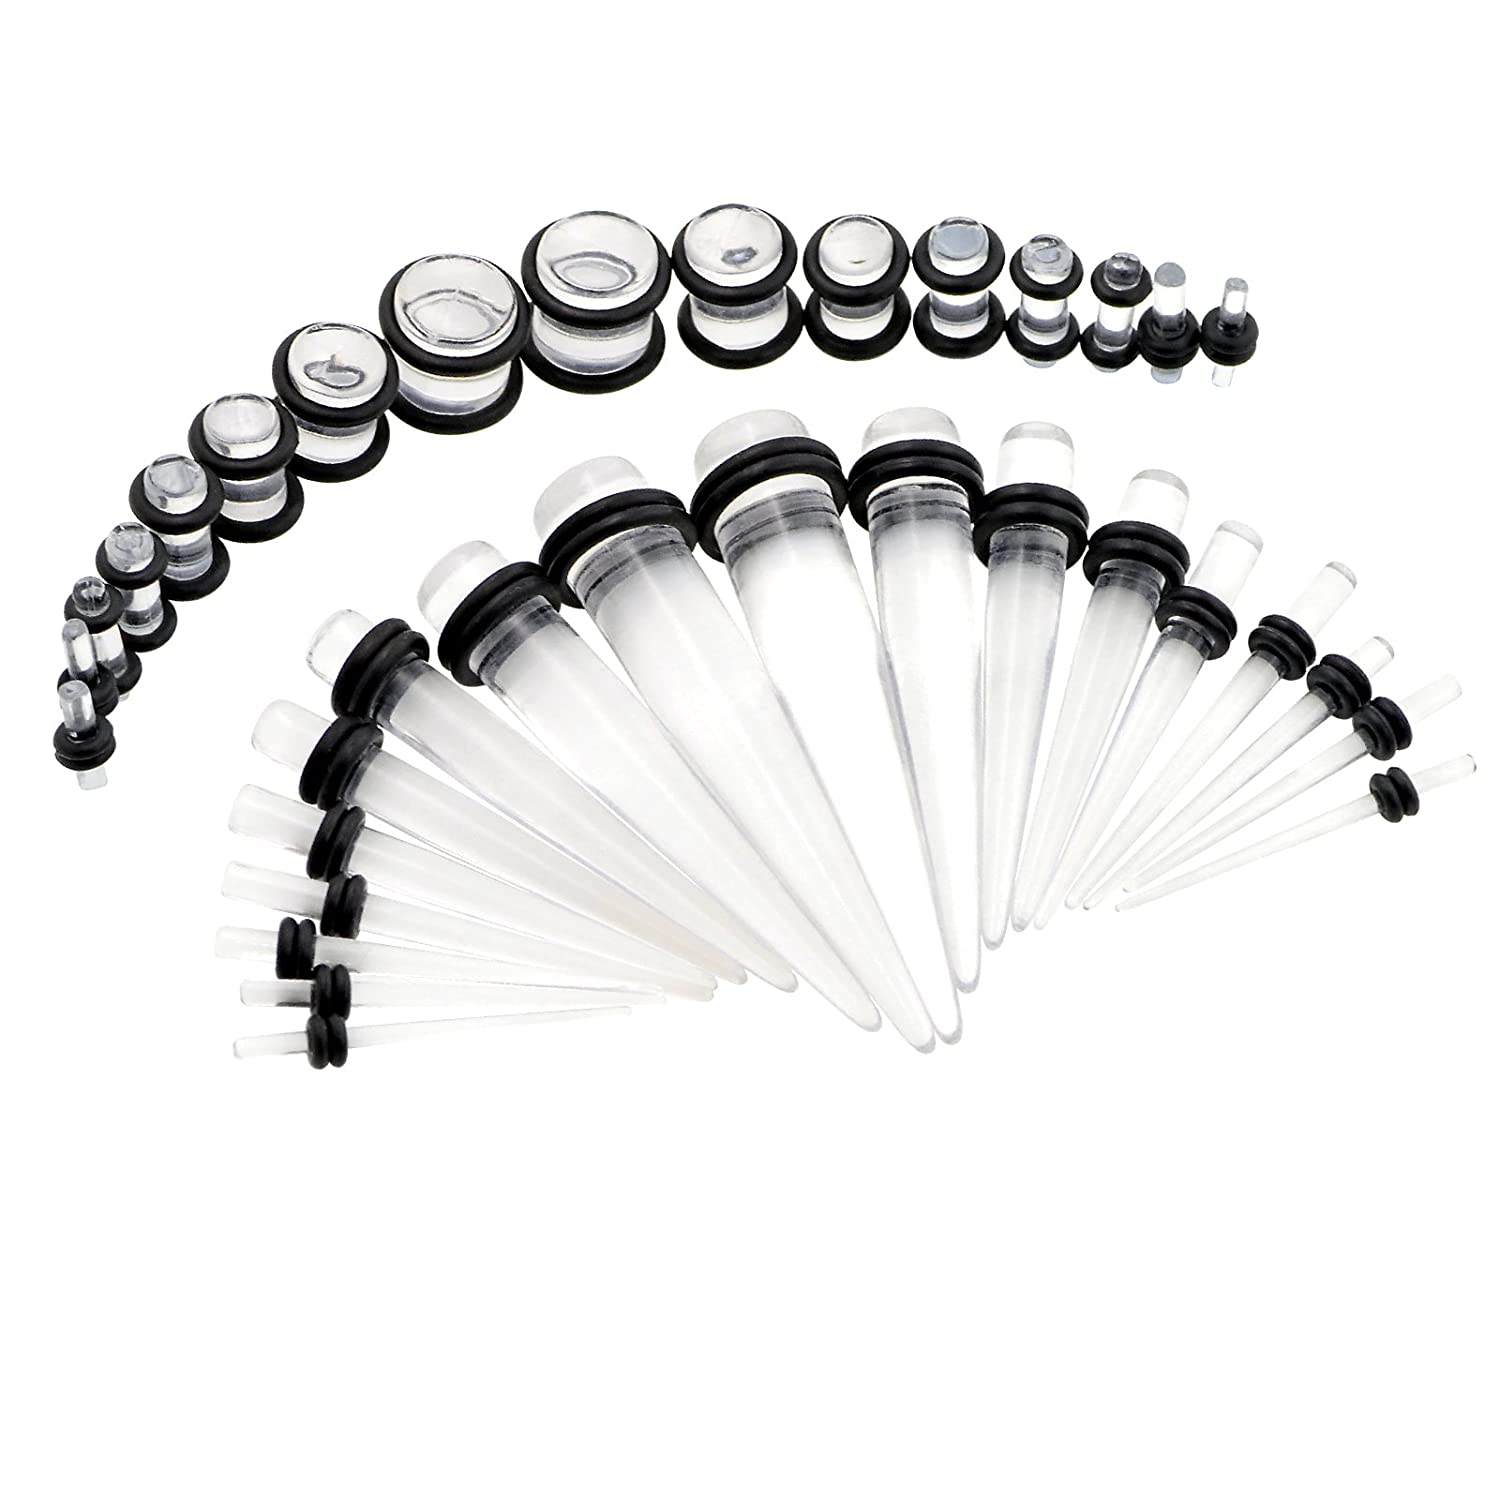 36Pcs Acrylic Taper Kit with Plugs Double O-rings 14G-00G Stretching Kit Multi-colors X069-bk